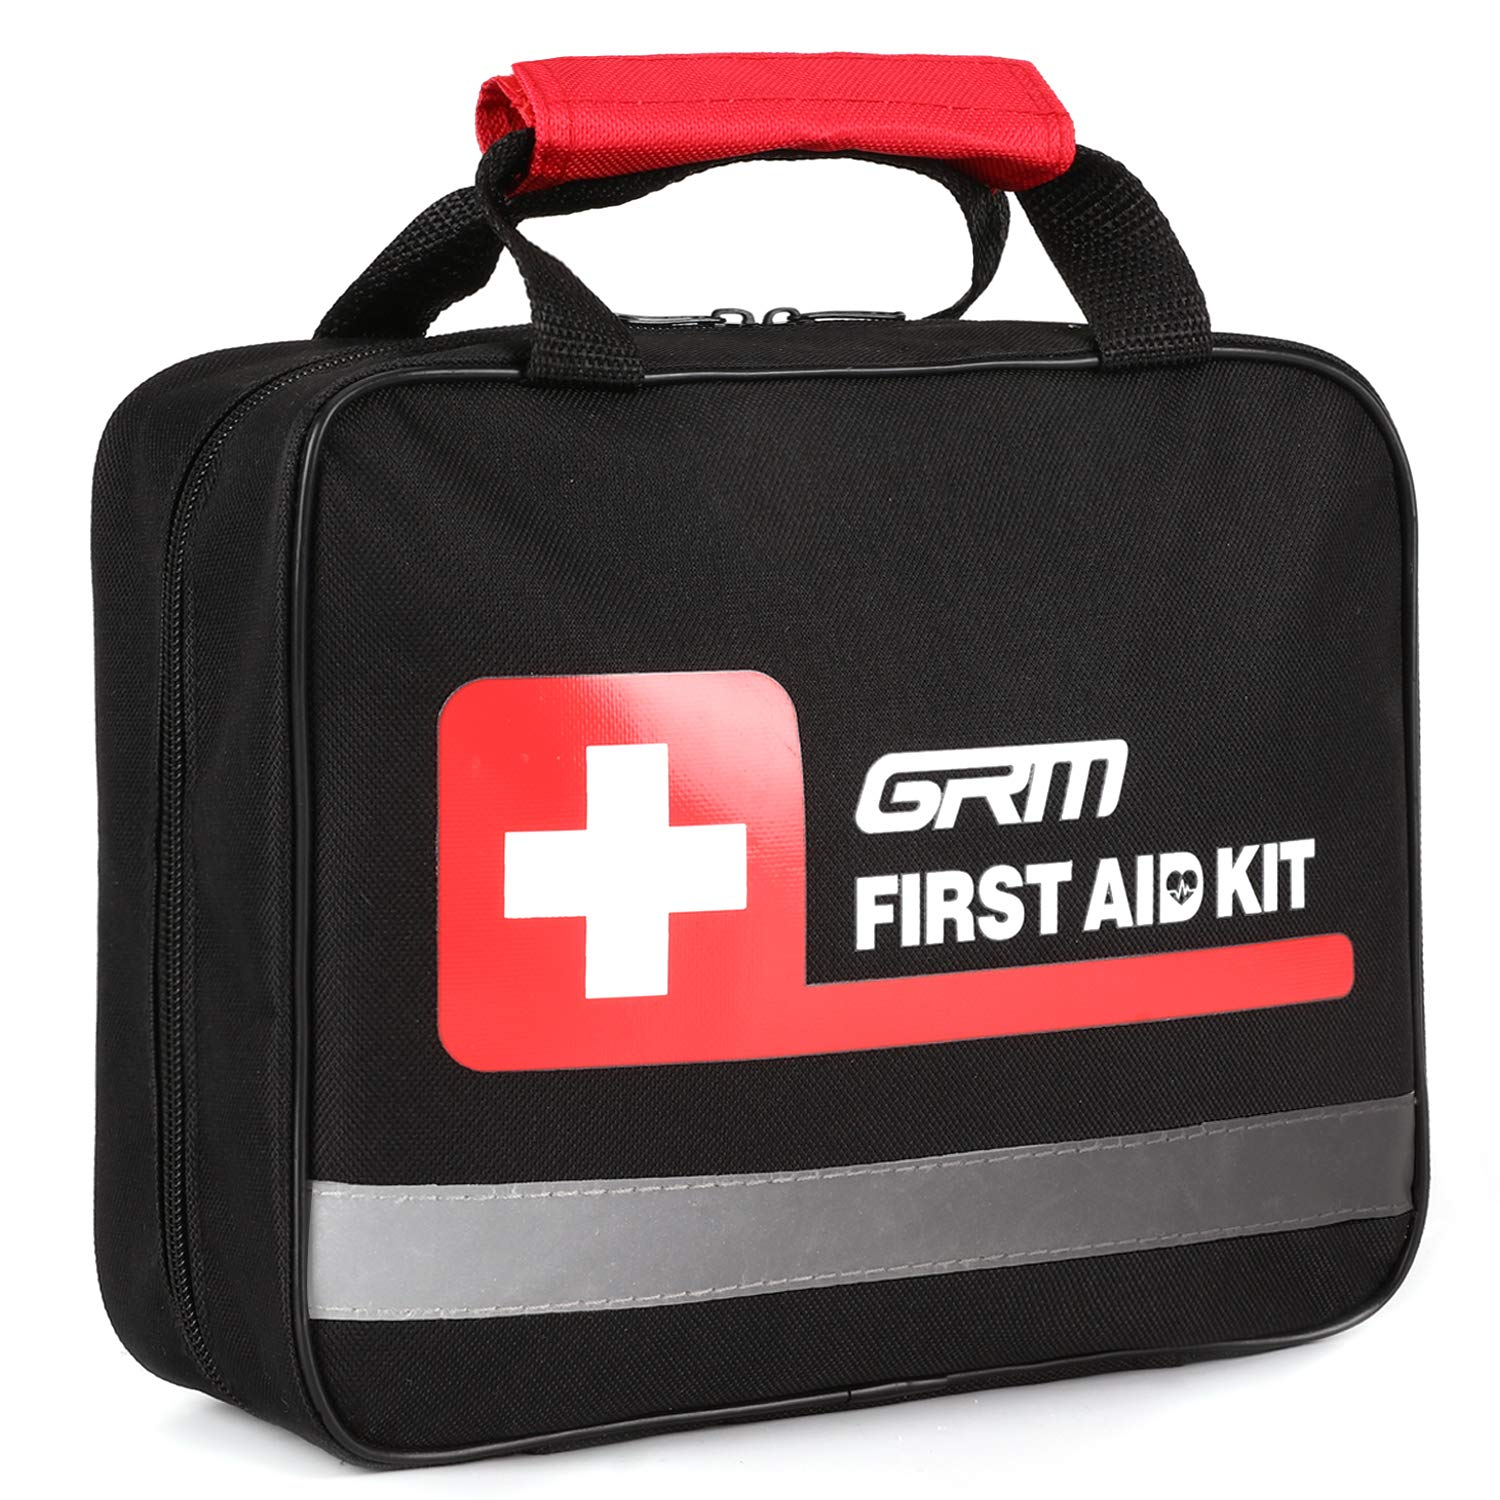 GRM Upgraded 465 Pieces First Aid Kit for Businesses Emergency at Home, Office, Outdoors, Car, Camping, Workplace…